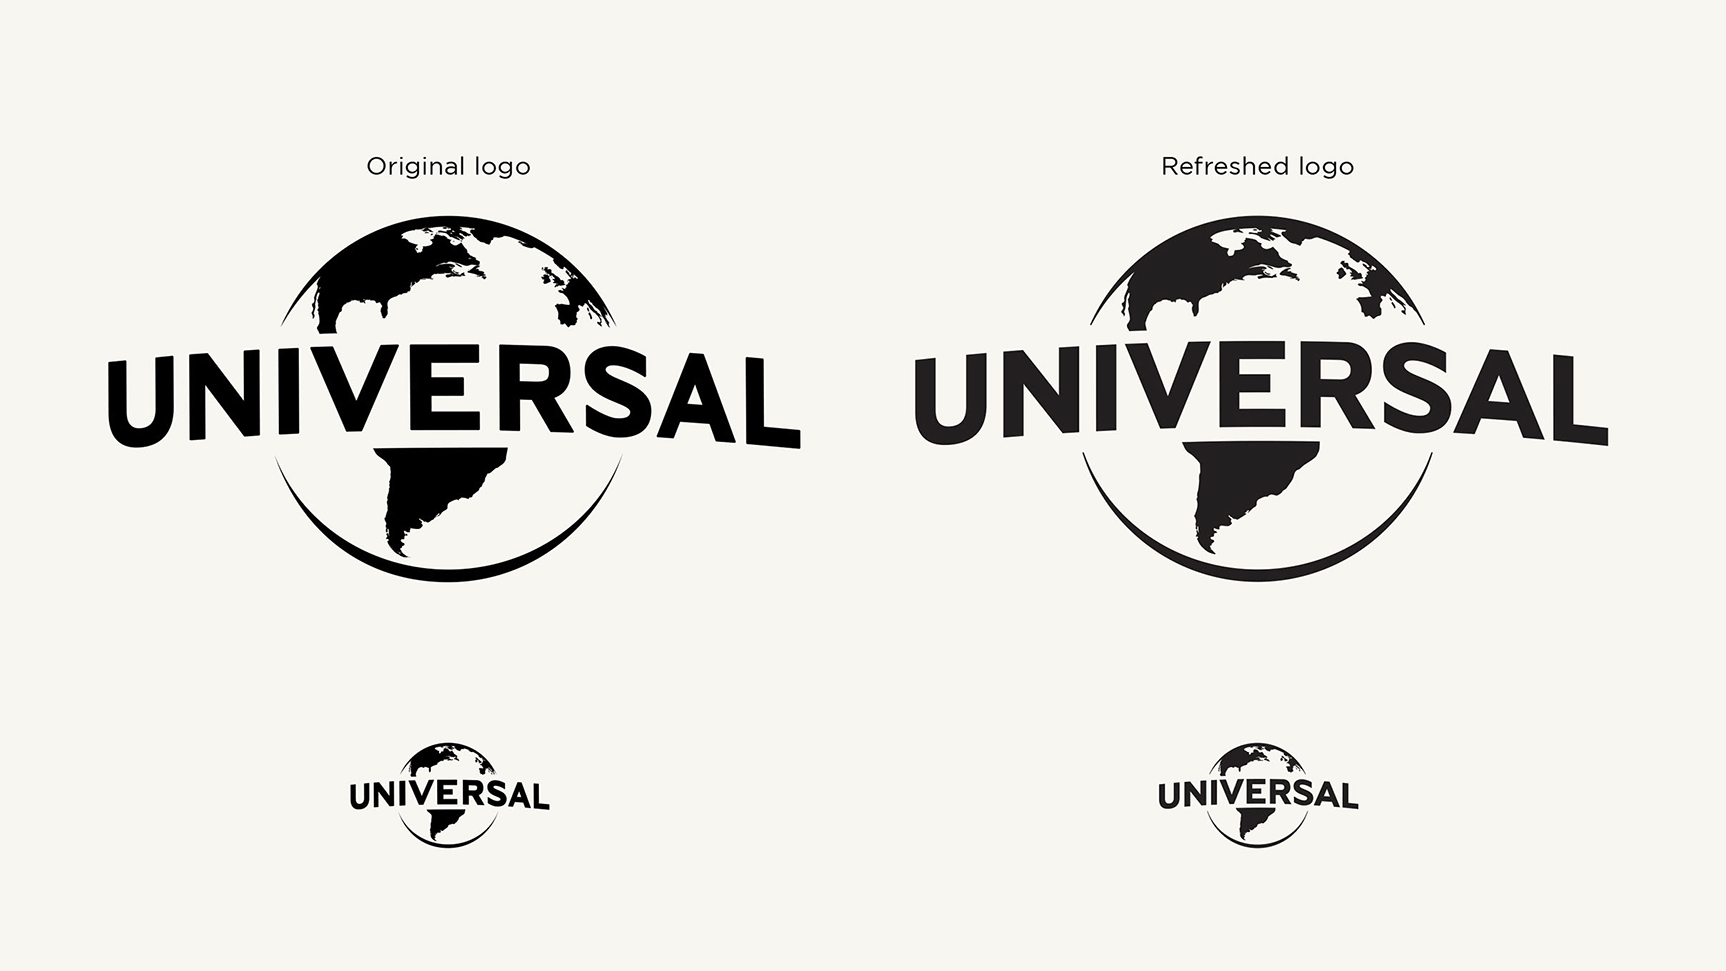 Master of the Universal